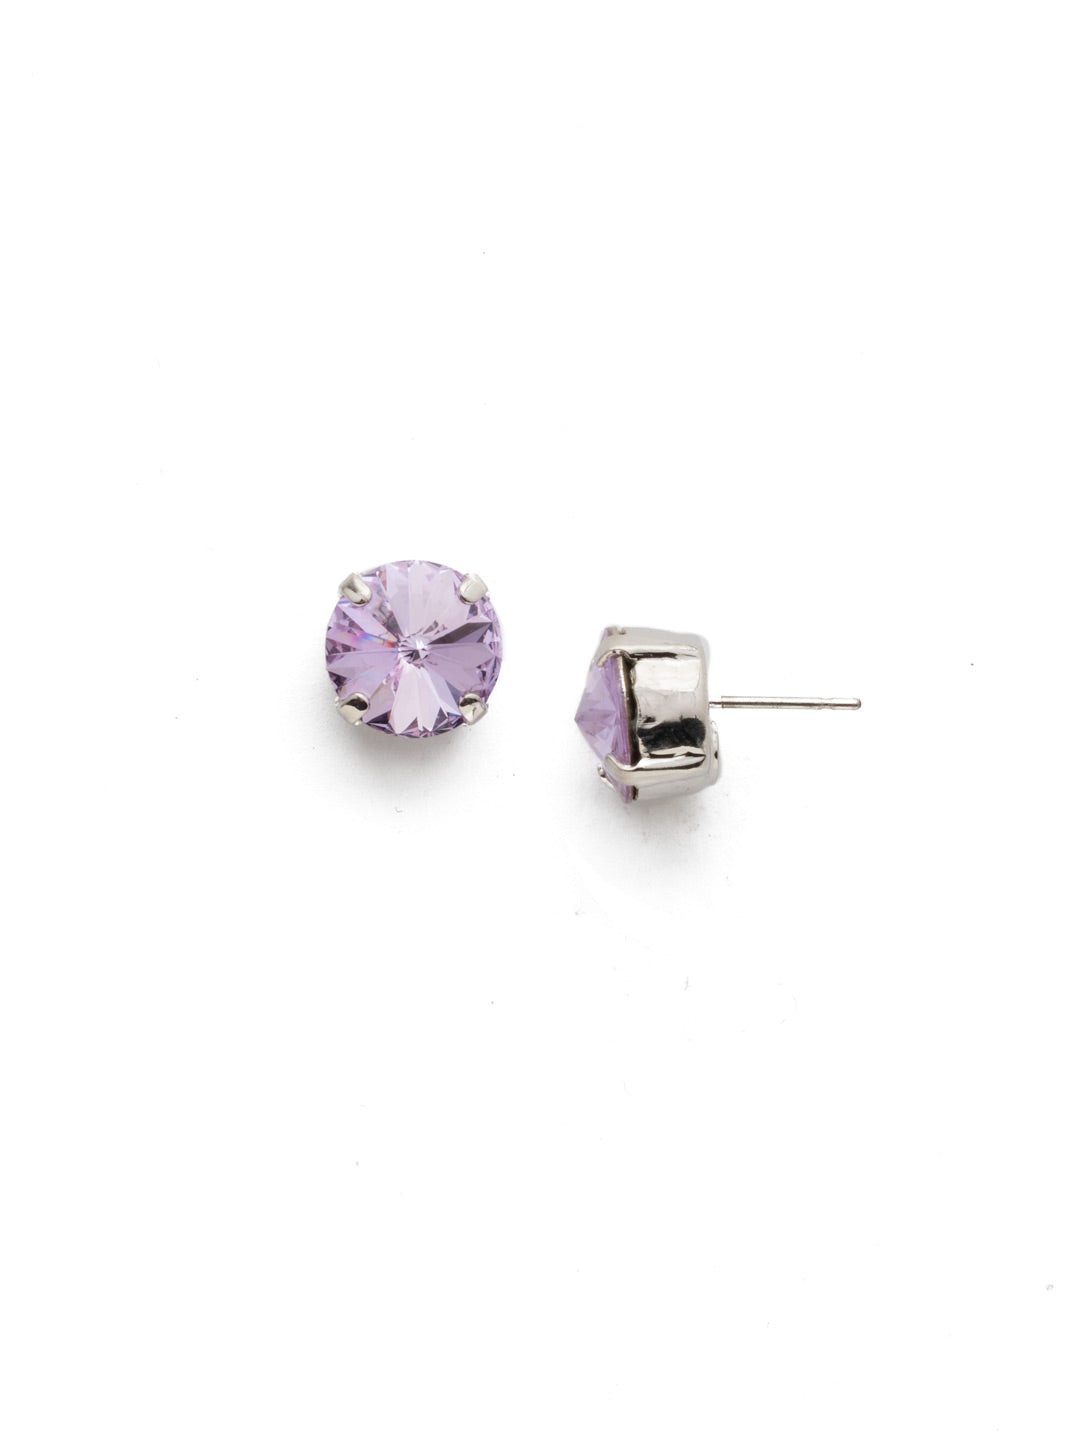 Round Crystal Stud Earrings - ECM14RHTUL